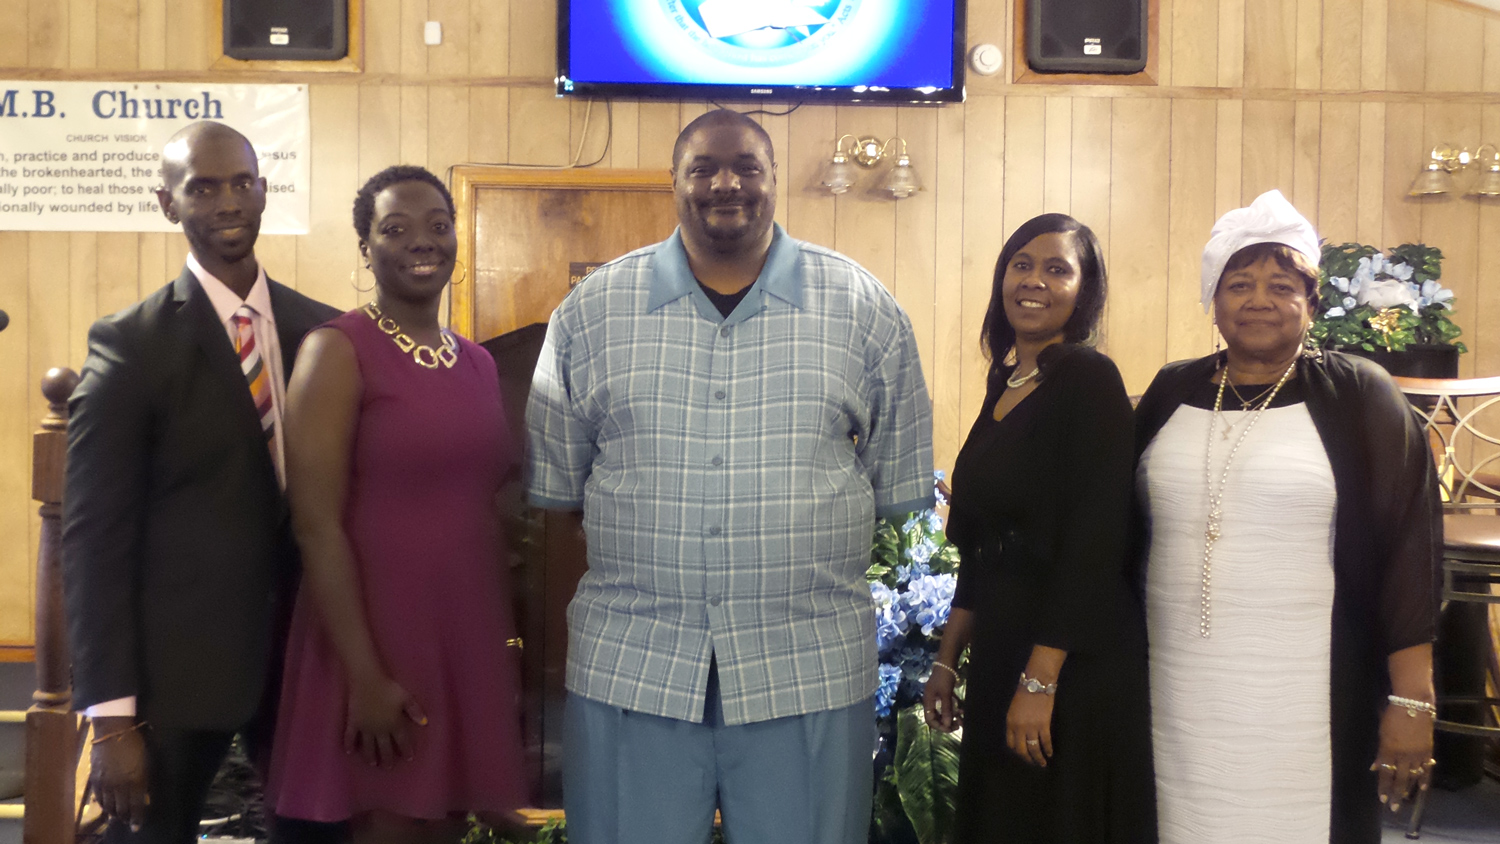 From left to right: Alonzo Brooks and Paytreen Davidson Brooks (West Point, MS); MC Hilson Jr. (Clarksdale, MS); Teresa Jones (Winona, MS); and Georgia R. Boss (Clarksdale, MS)